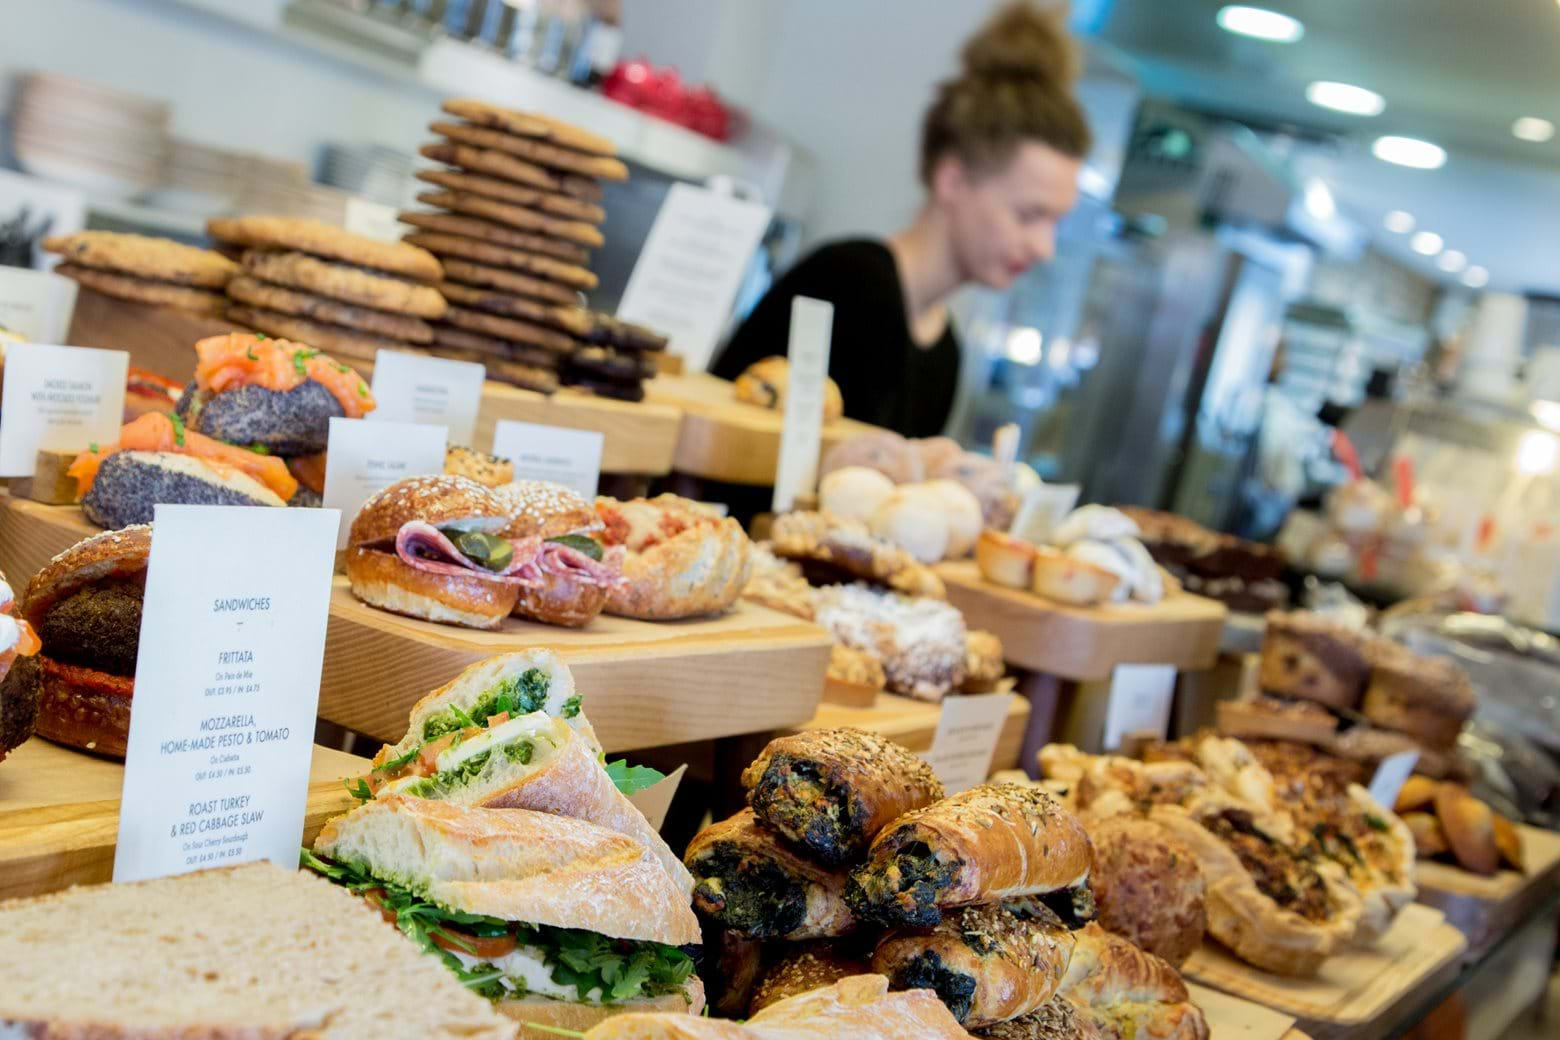 Places to eat in Wandsworth